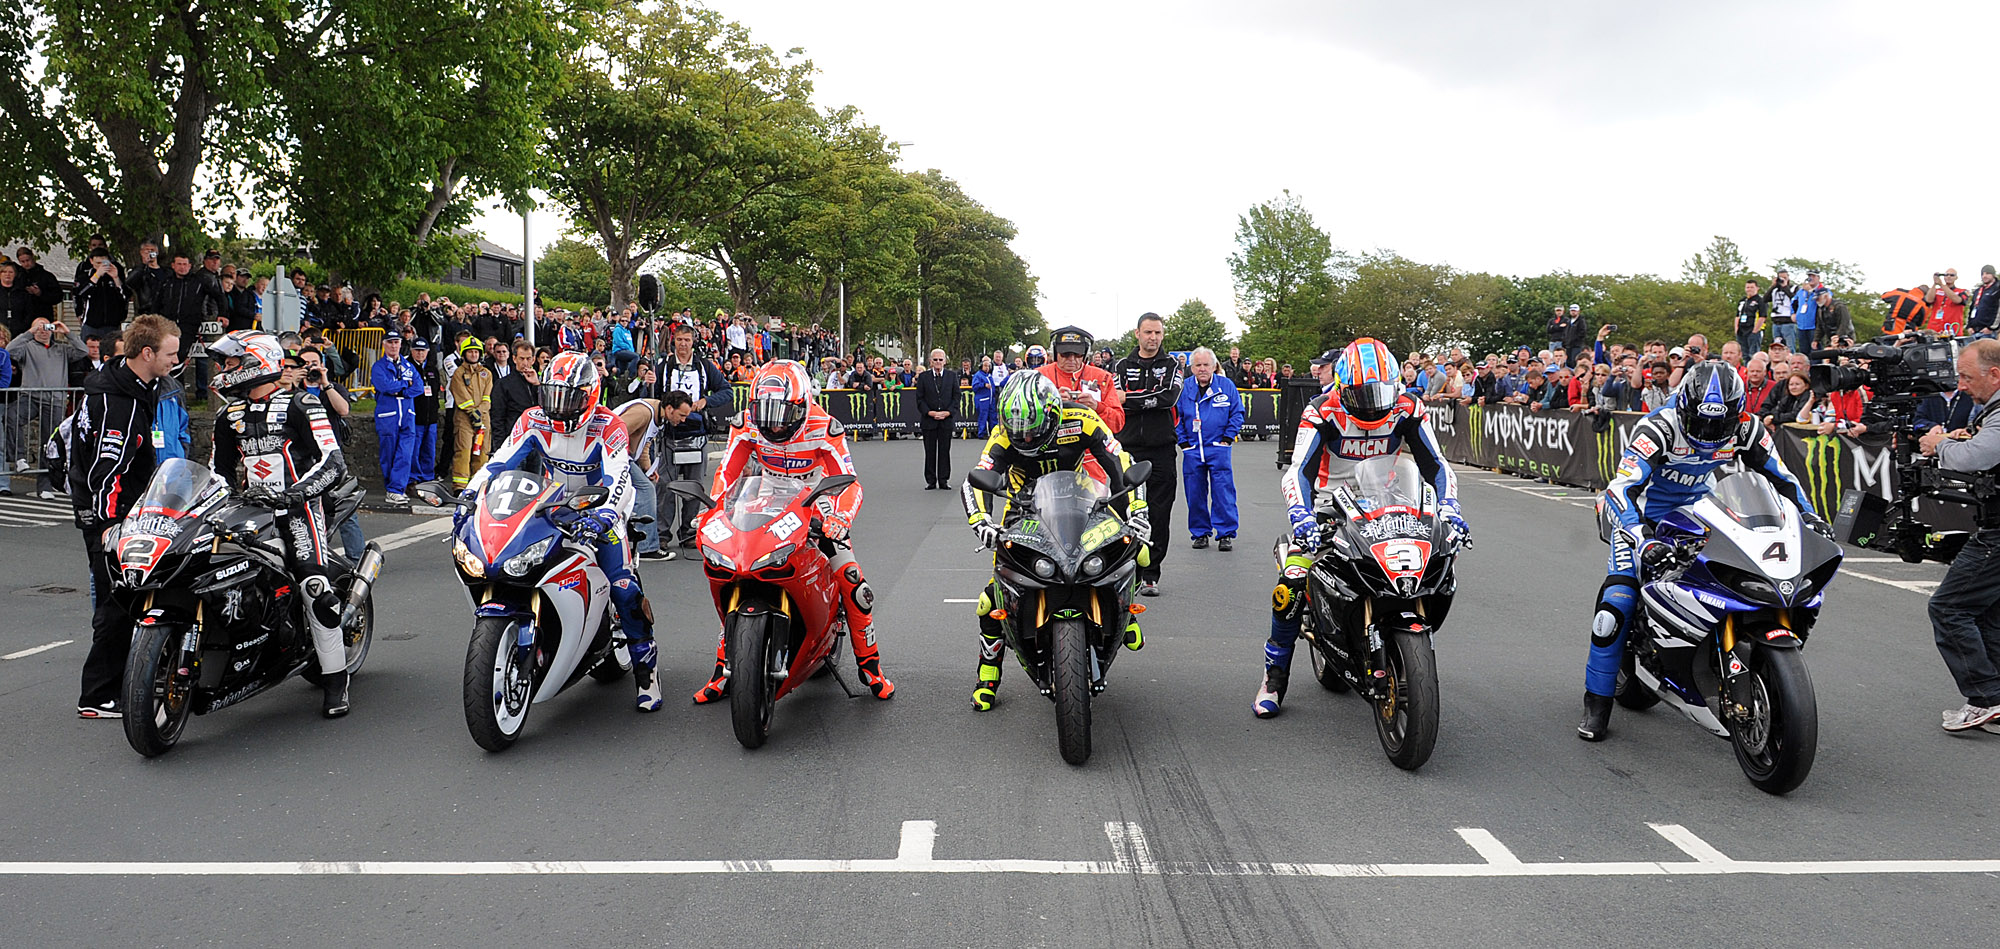 061011-iomtt-parade-lap